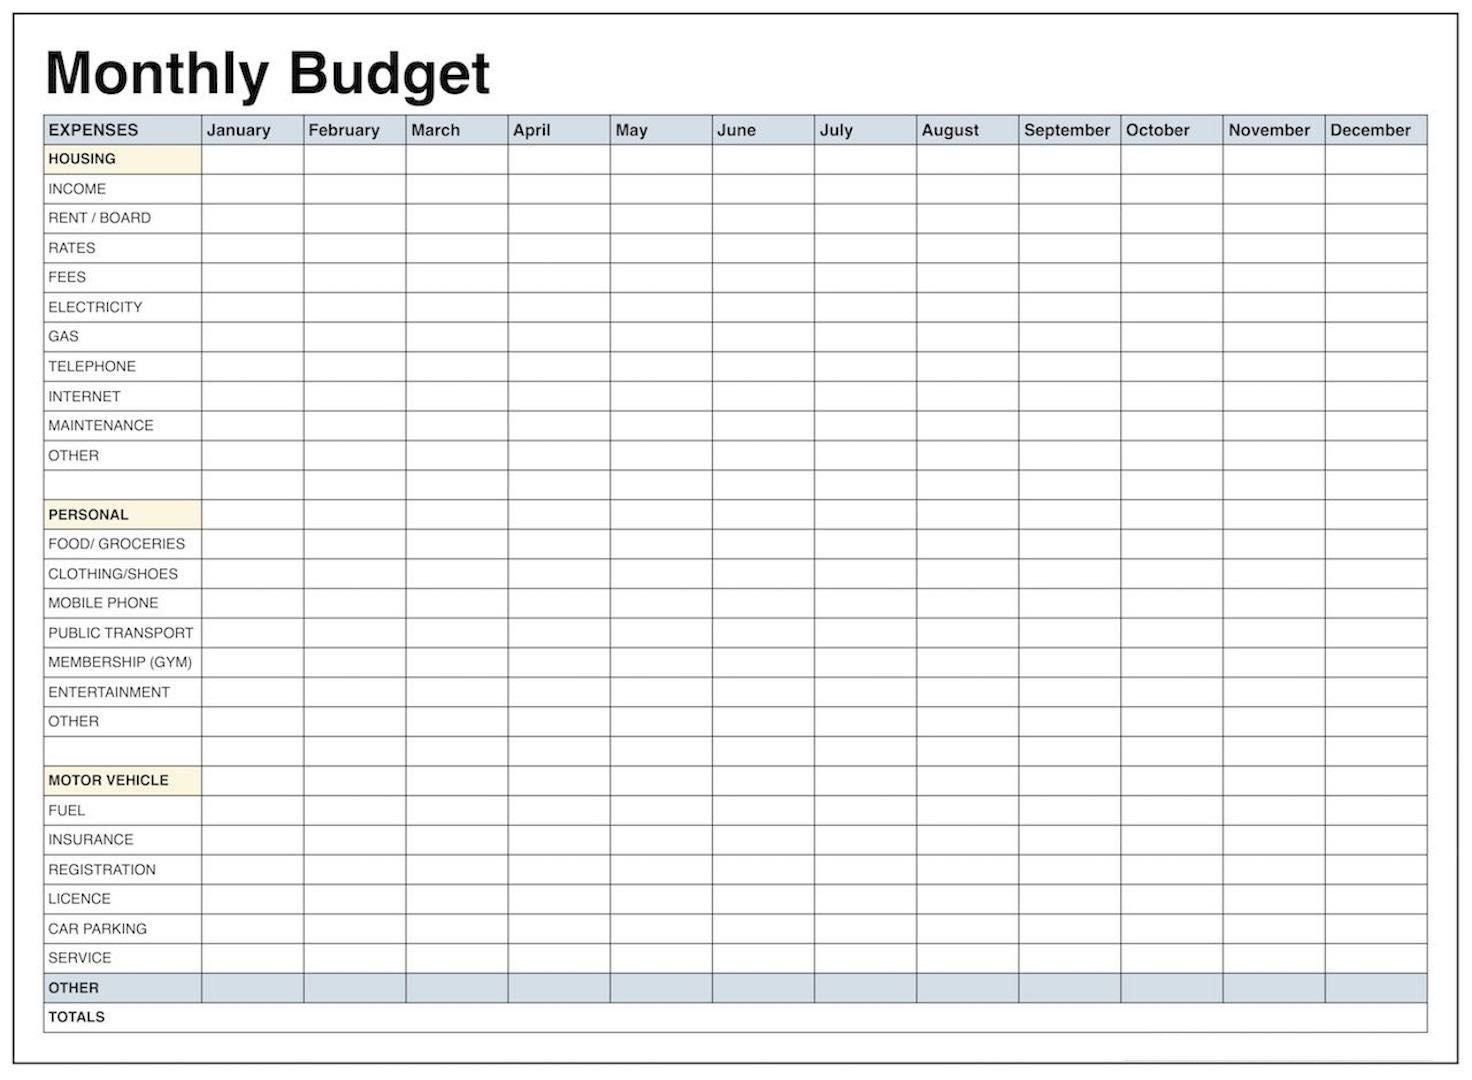 Blank Monthly Budget Template Pdf | Blank Templates | Budgeting - Free Printable Monthly Expense Sheet